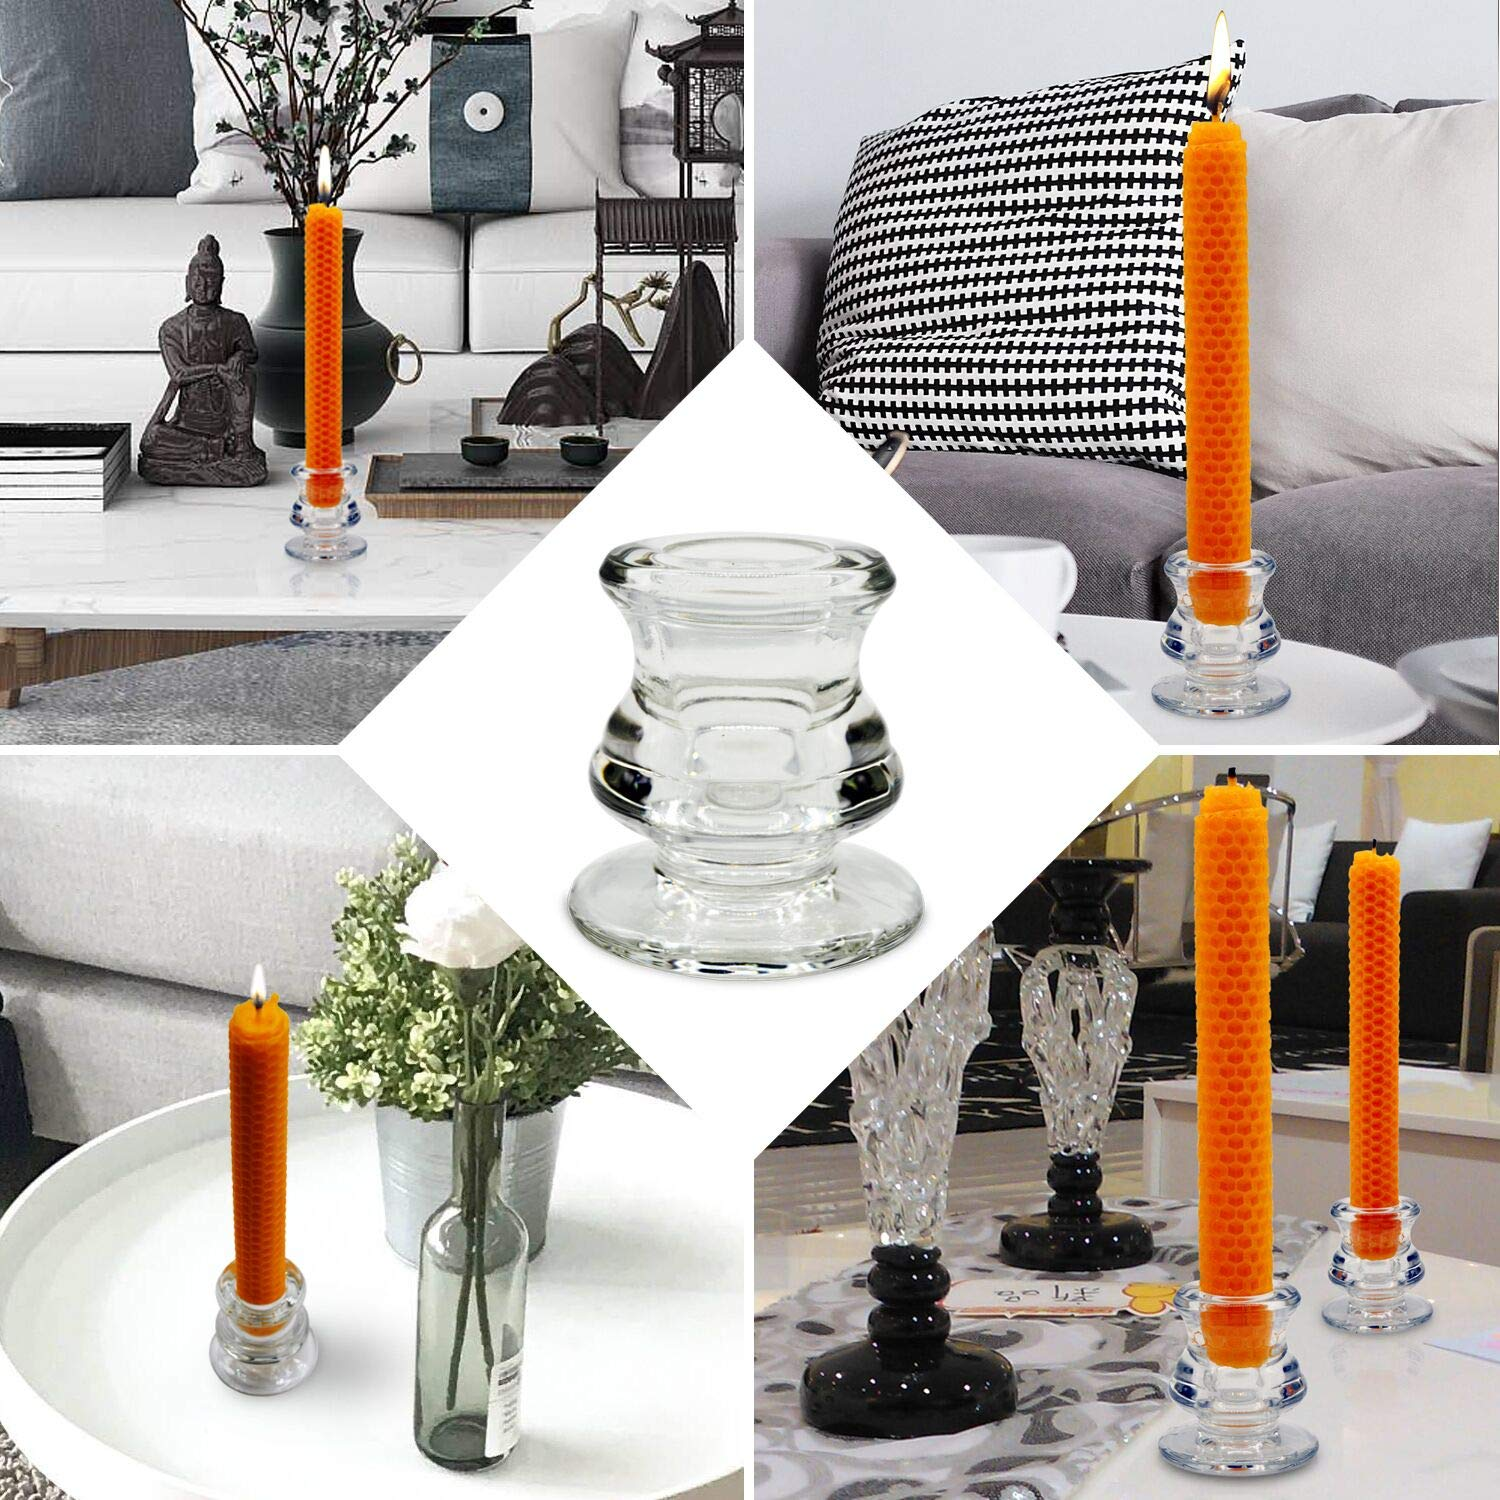 Party Dinning Decorative Taper Candlestick Holder for Wedding NIGHTKEY Clear Glass Taper Candle Holder Set of 2